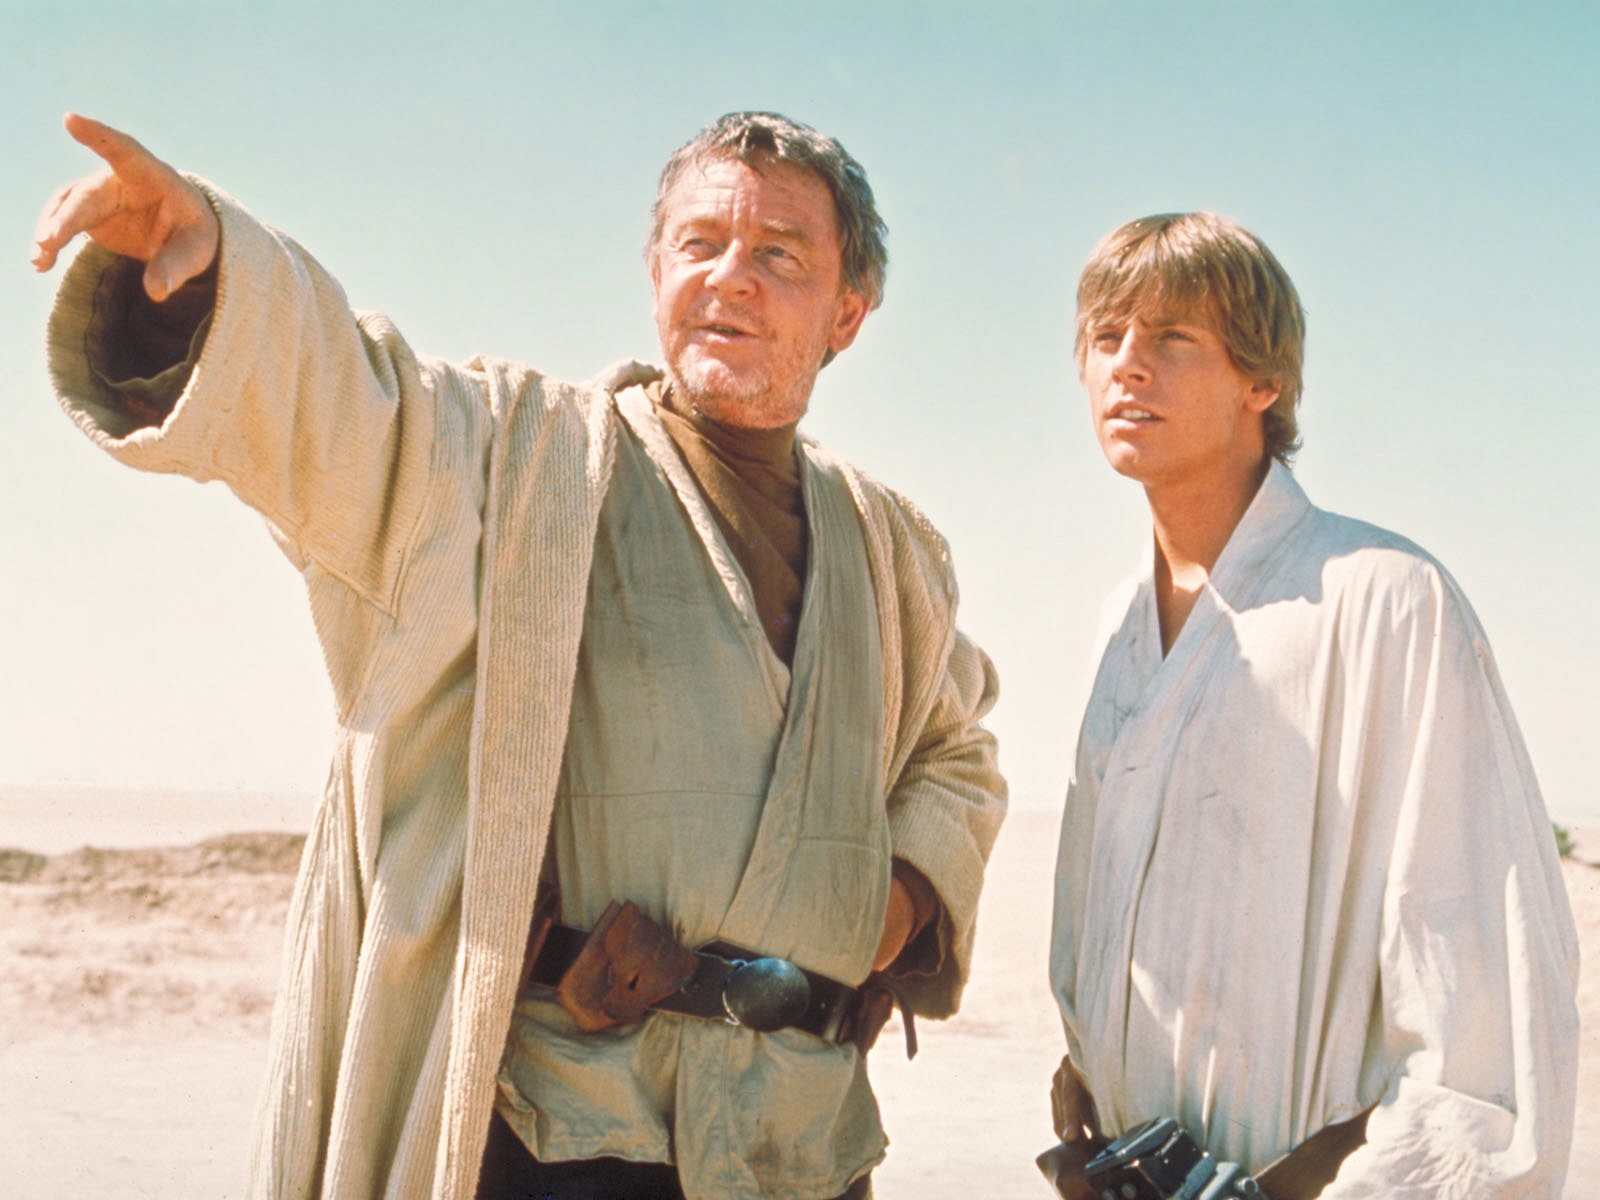 Why Dont Any Jedi Knights Wear White Robes Instead Of Brown Page 5 Jedi Council Forums